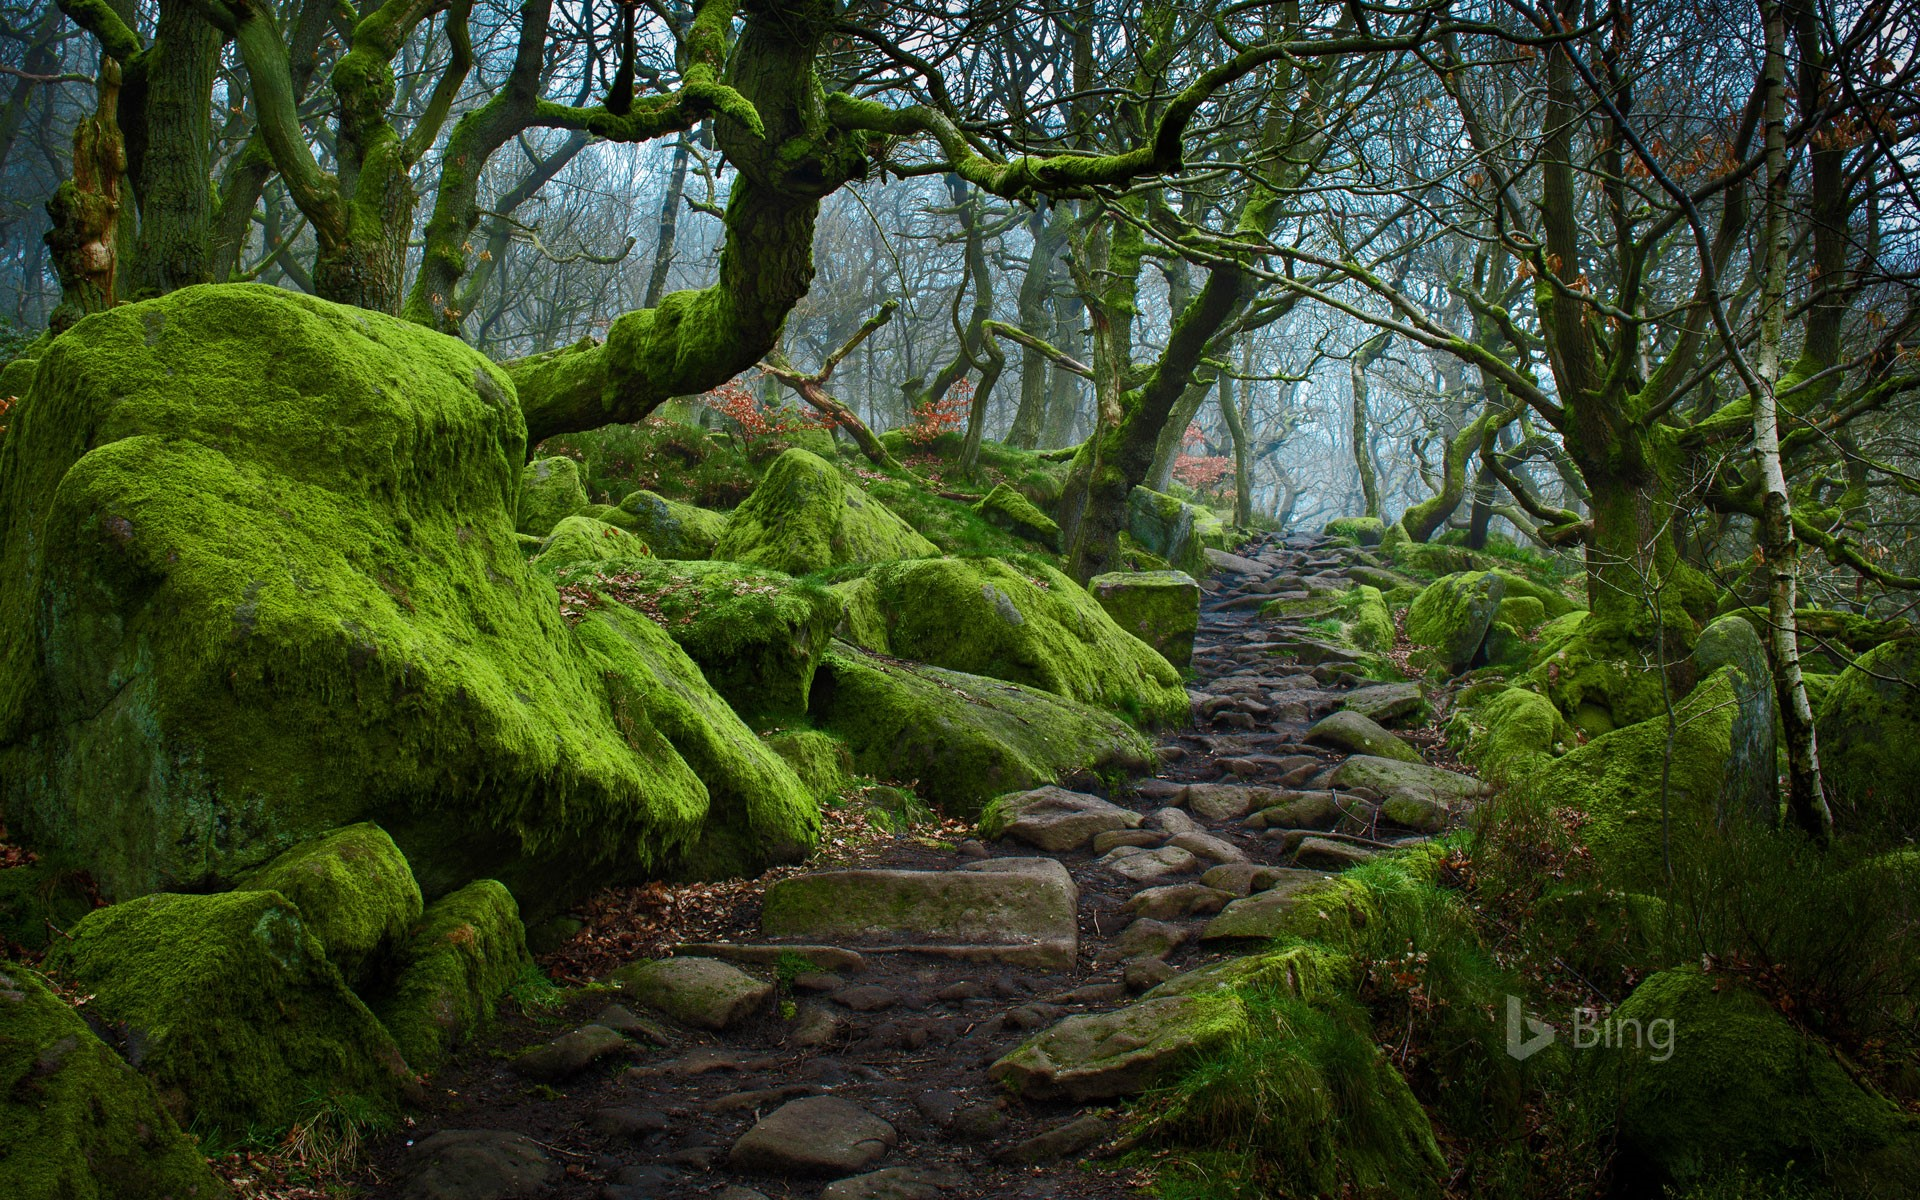 Forest path in Padley Gorge in Derbyshire